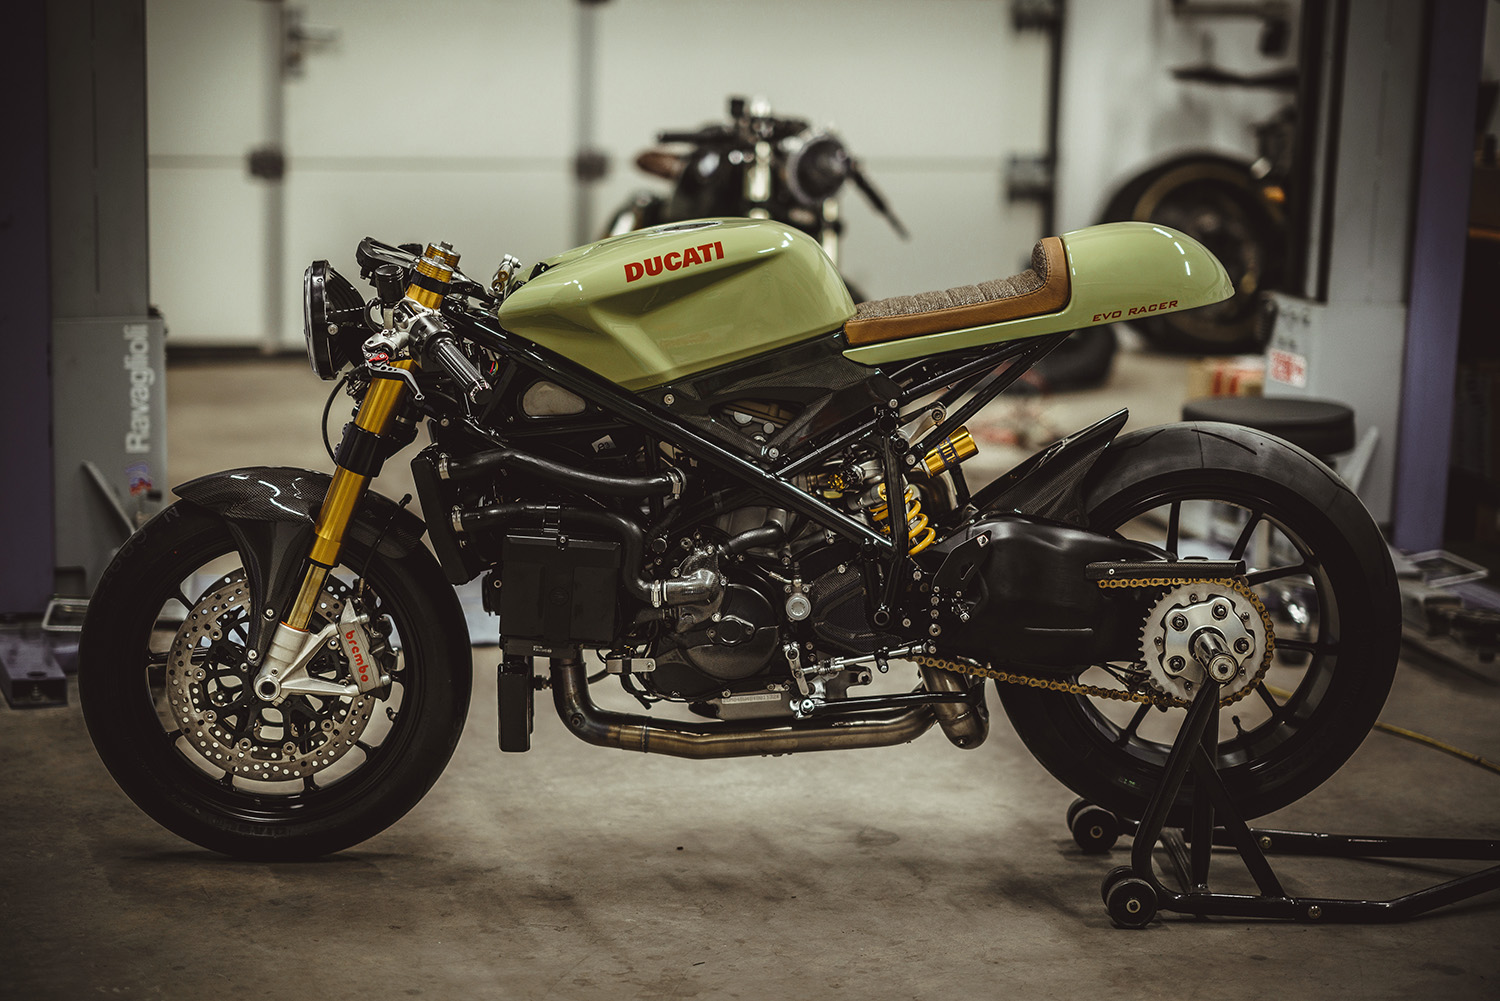 Austria's NCT Motorcycles take this Ducati 848 Evo up a notch